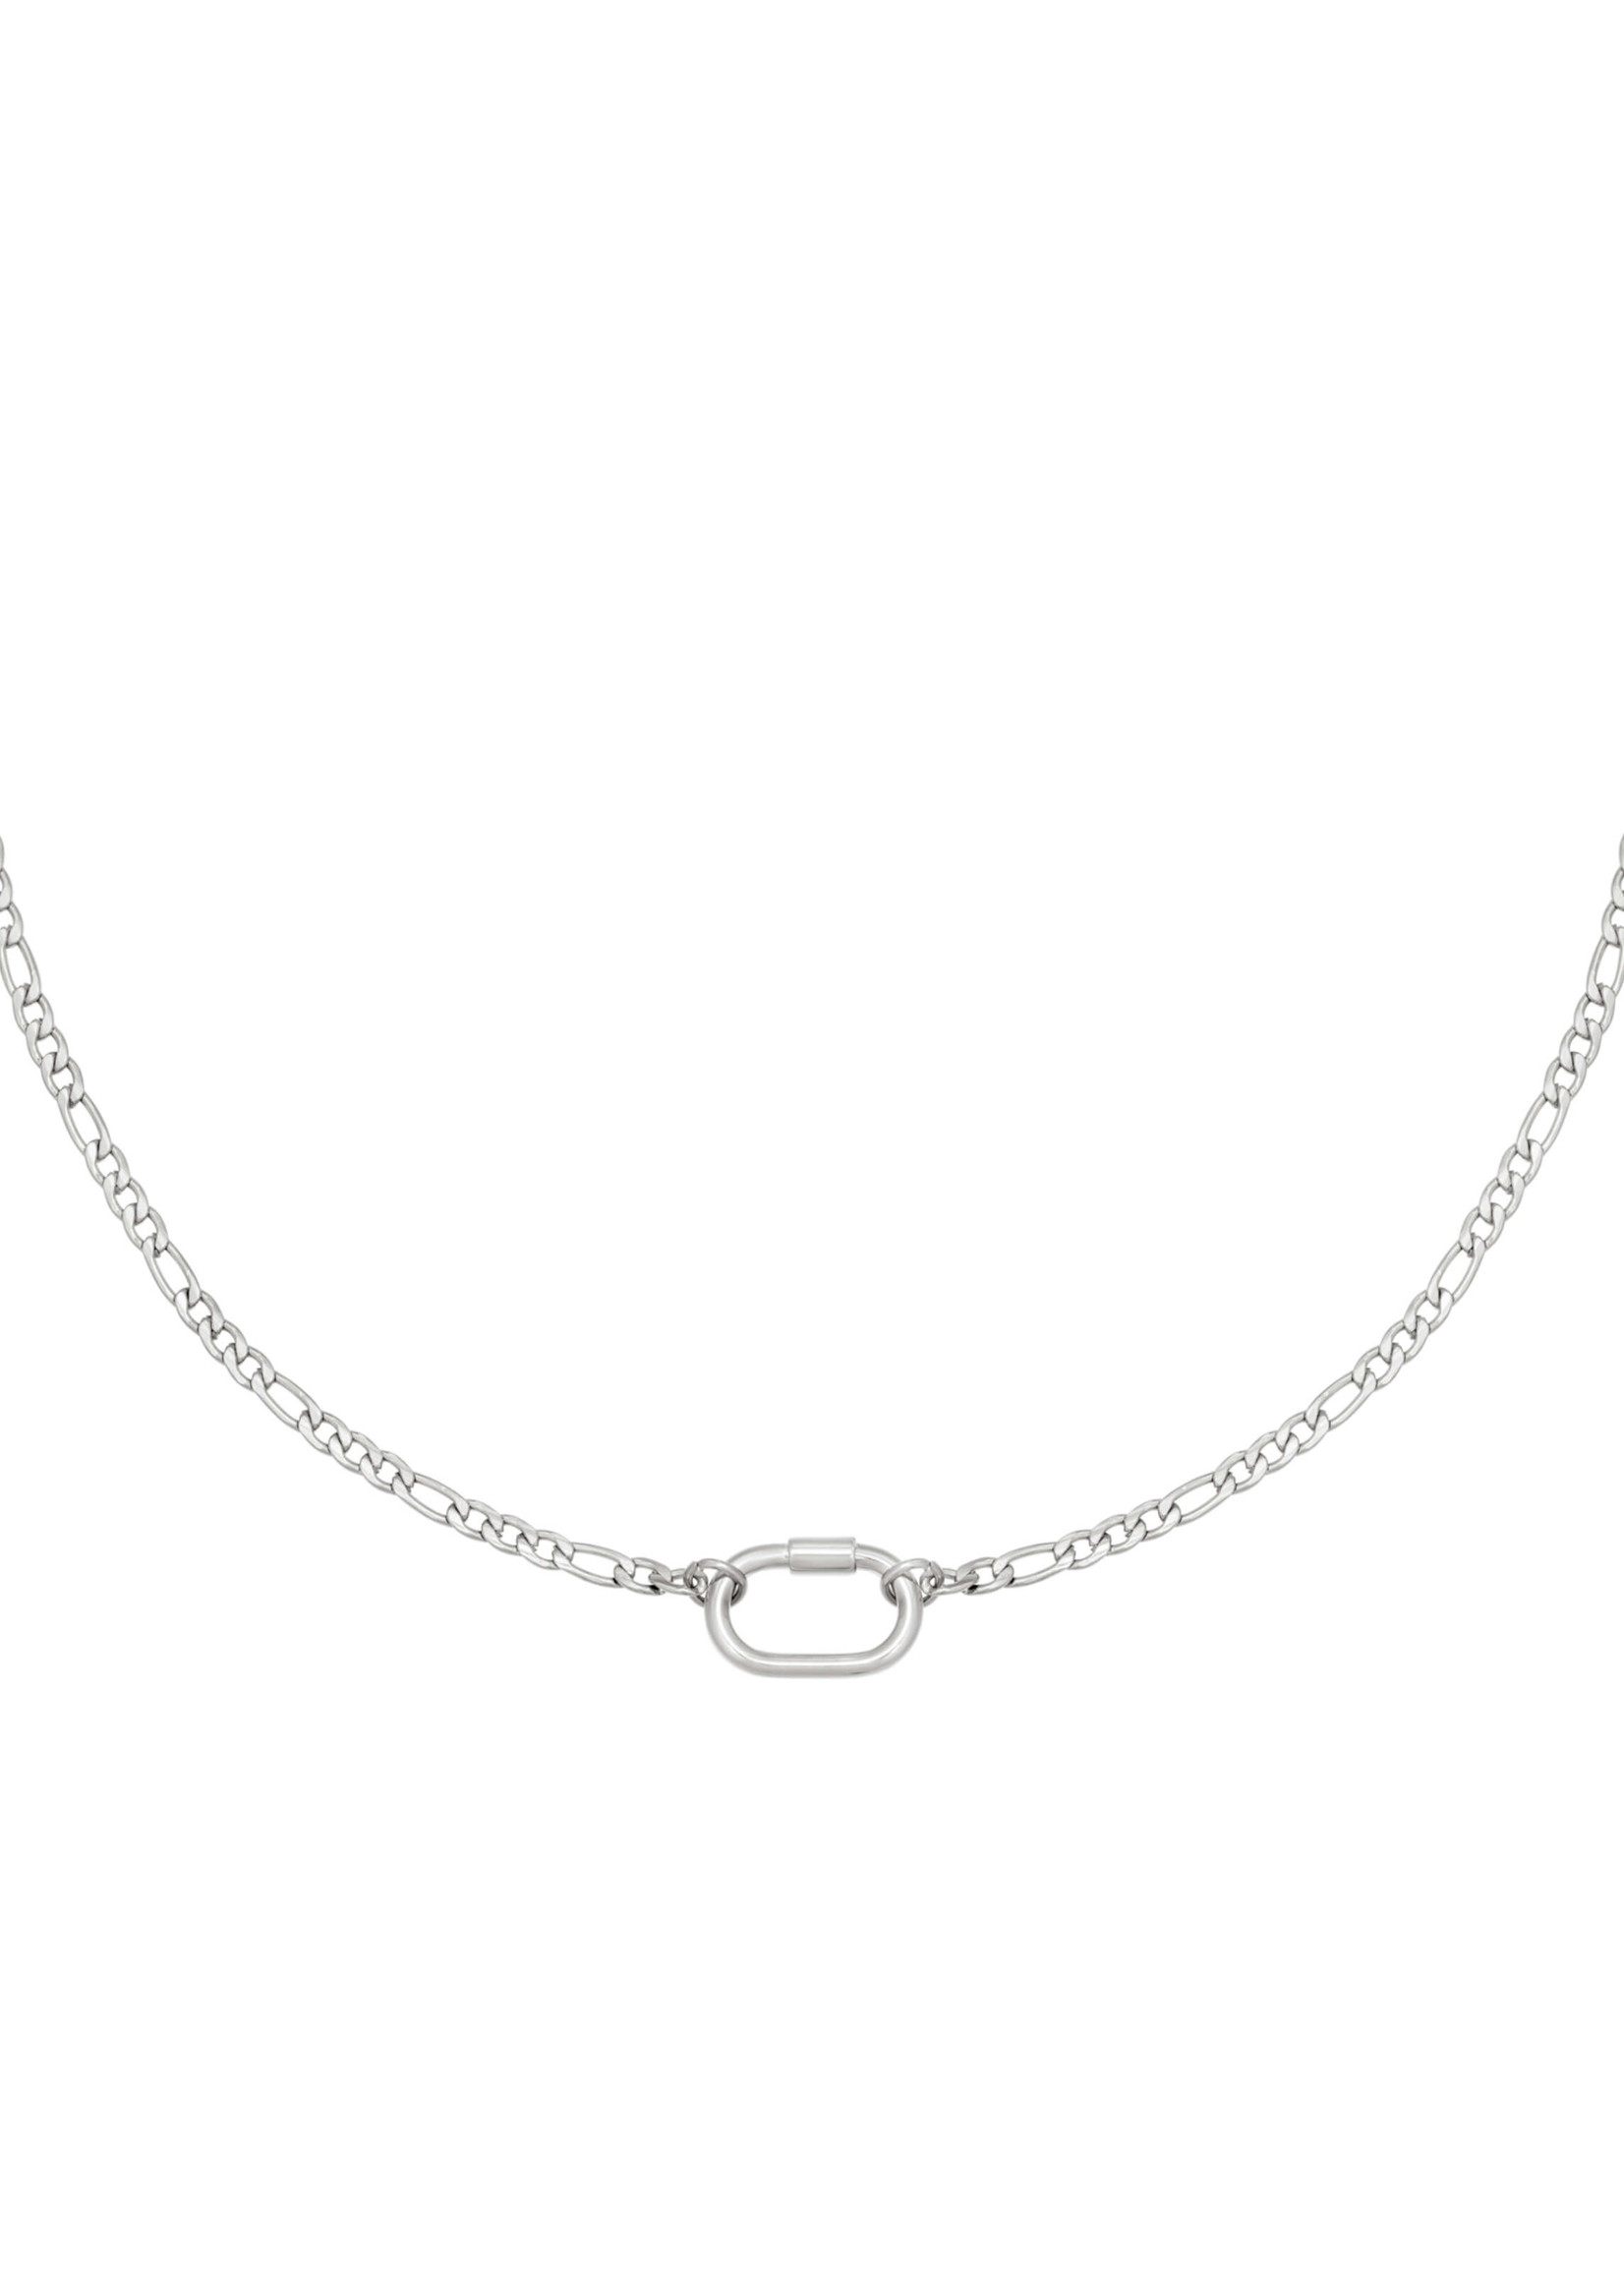 SHELBY KETTING ZILVER